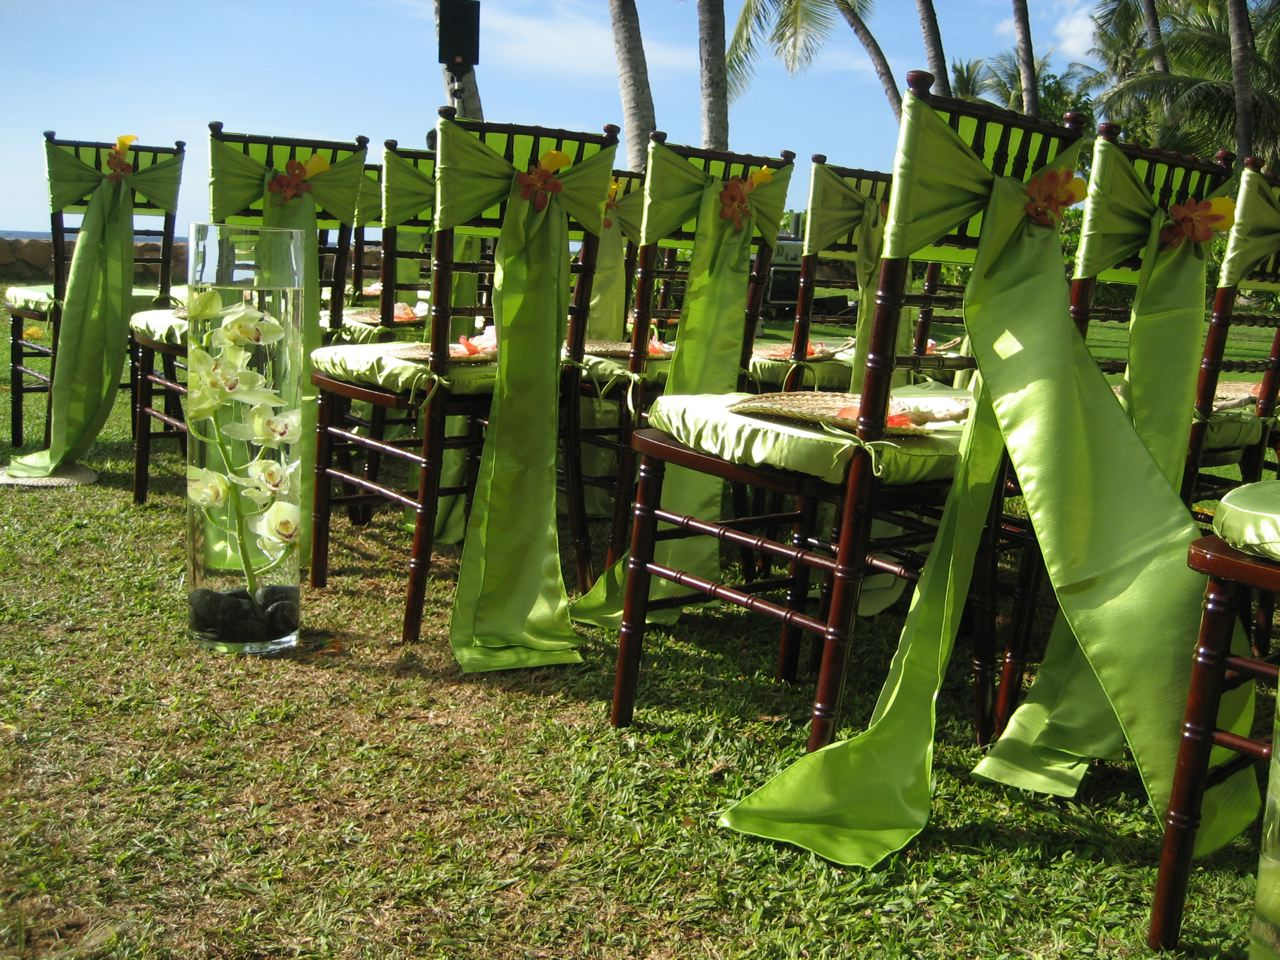 http://3.bp.blogspot.com/-rSn9hm_rMcs/T3dKam1uhZI/AAAAAAAABBg/v670ECwdlKk/s1600/chairs-with-no-covers-just-bows1.jpg